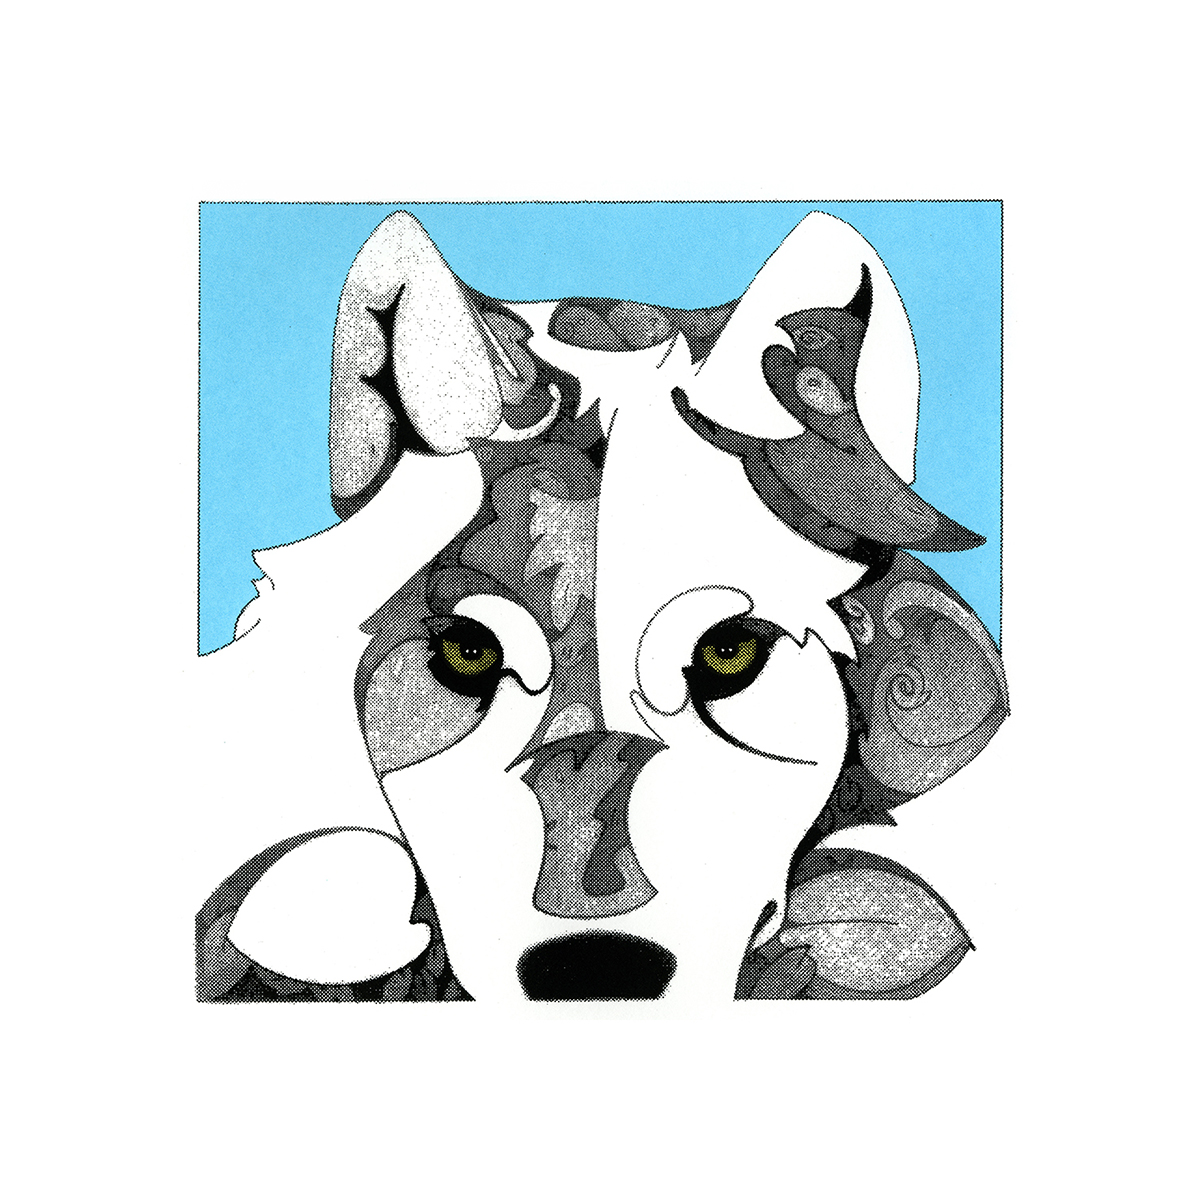 Morning Star (wolf) , serigraphic print, copyrighted by Kathleen Zimmerman